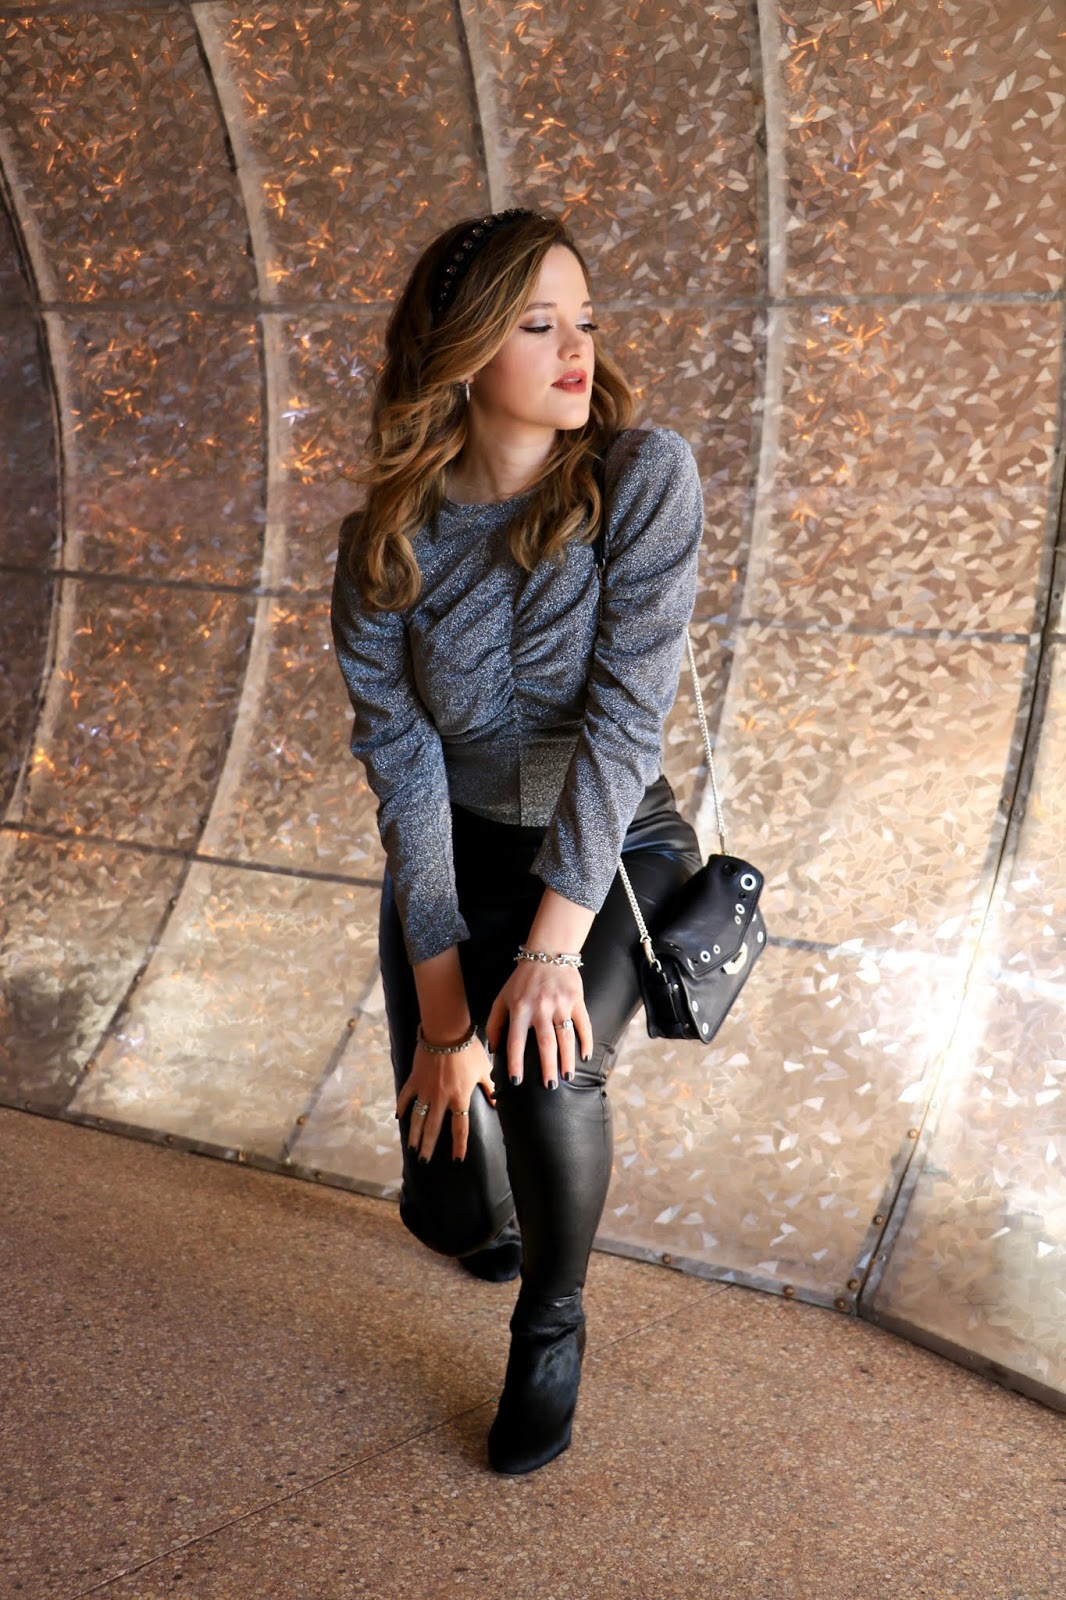 Nyc fashion blogger Kathleen Harper's New Year's Eve outfit idea.